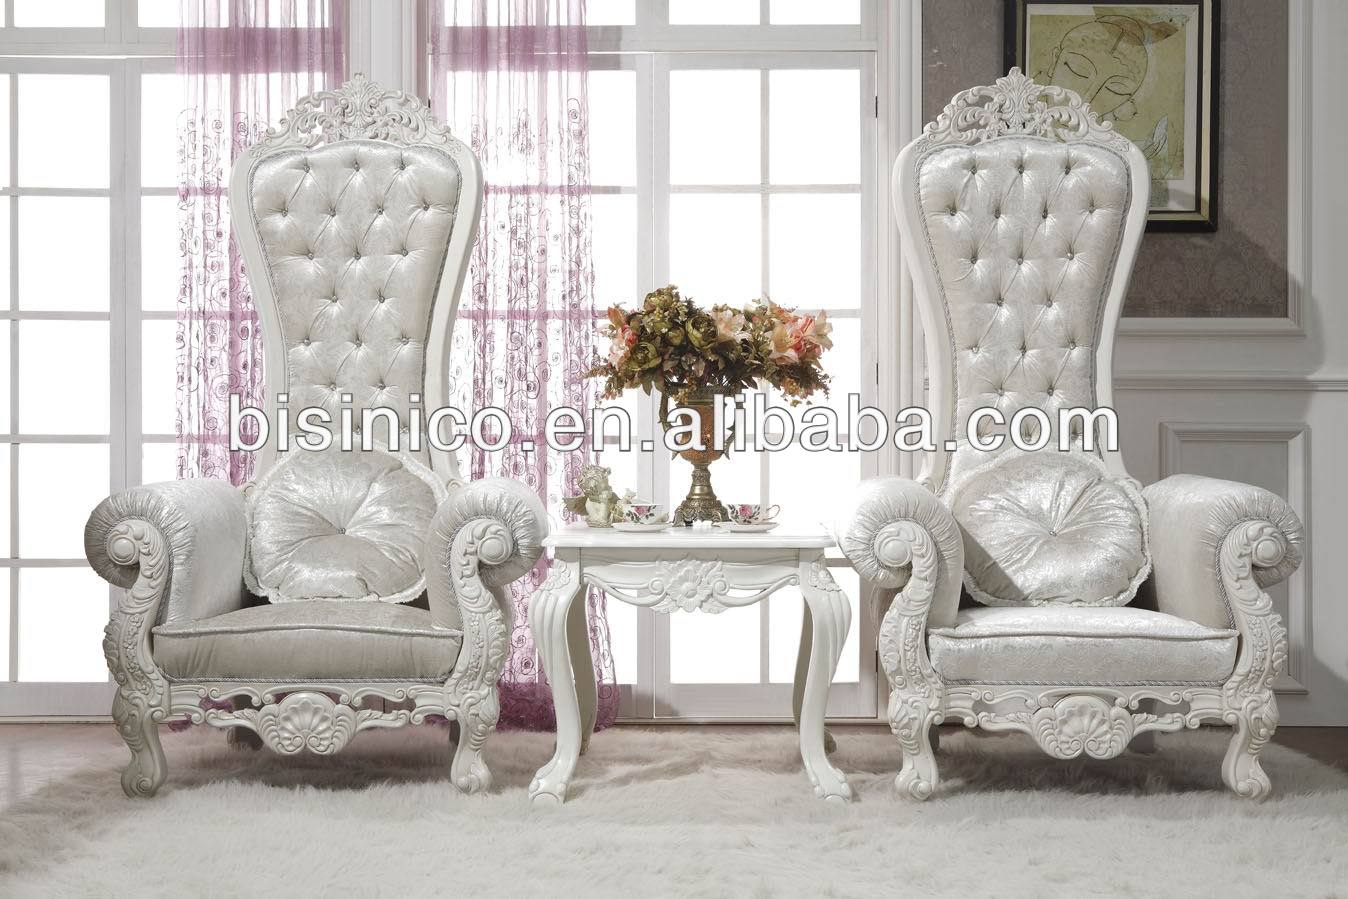 Luxury Living Room FurnitureElegant Royal Queen Chairs Set